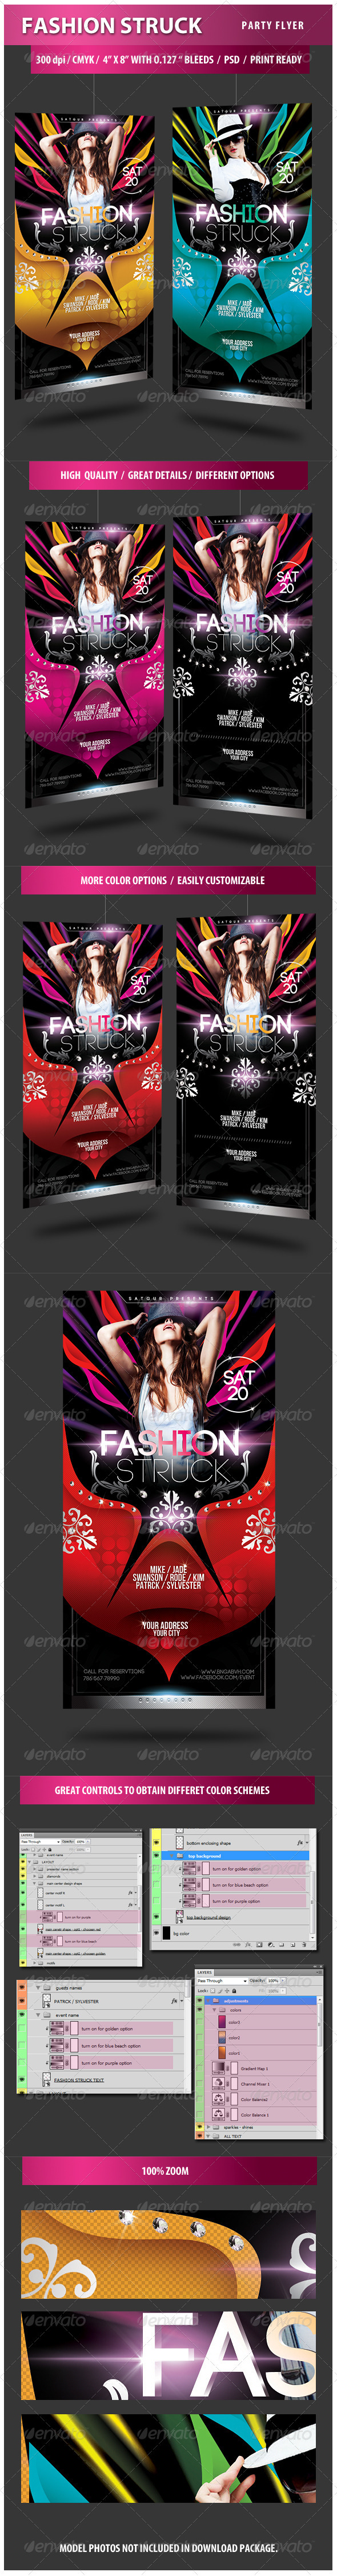 Fashion Struck Party Flyer - Clubs & Parties Events